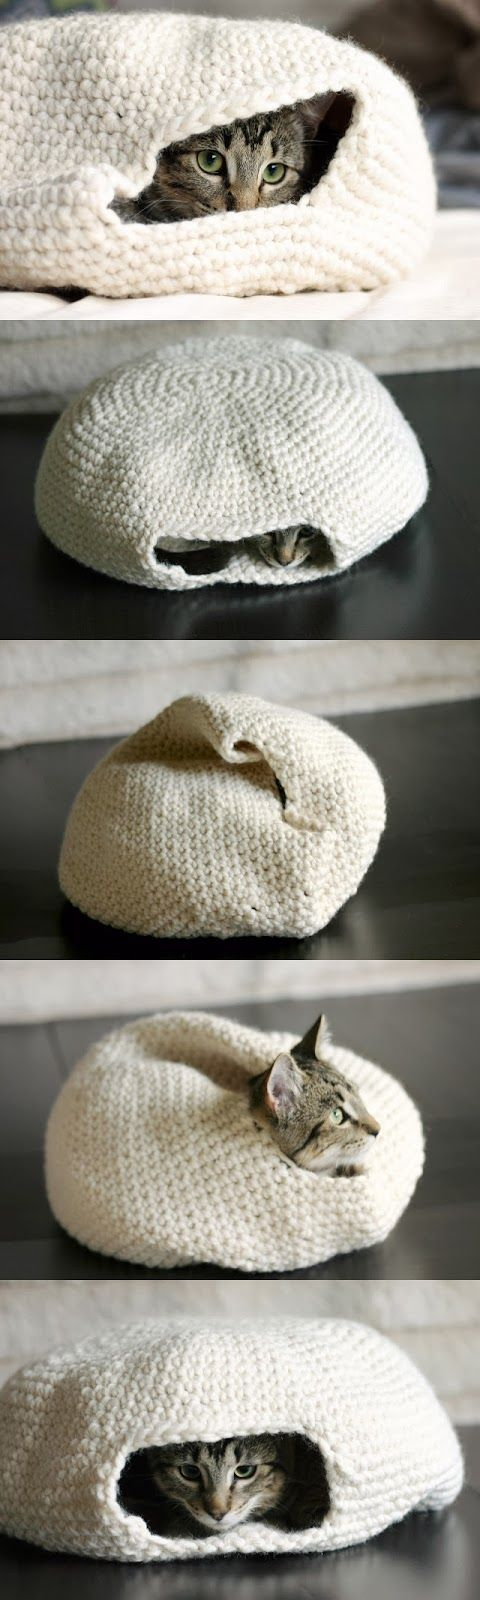 DIY Crochet cat bed ~ HANDY DIY